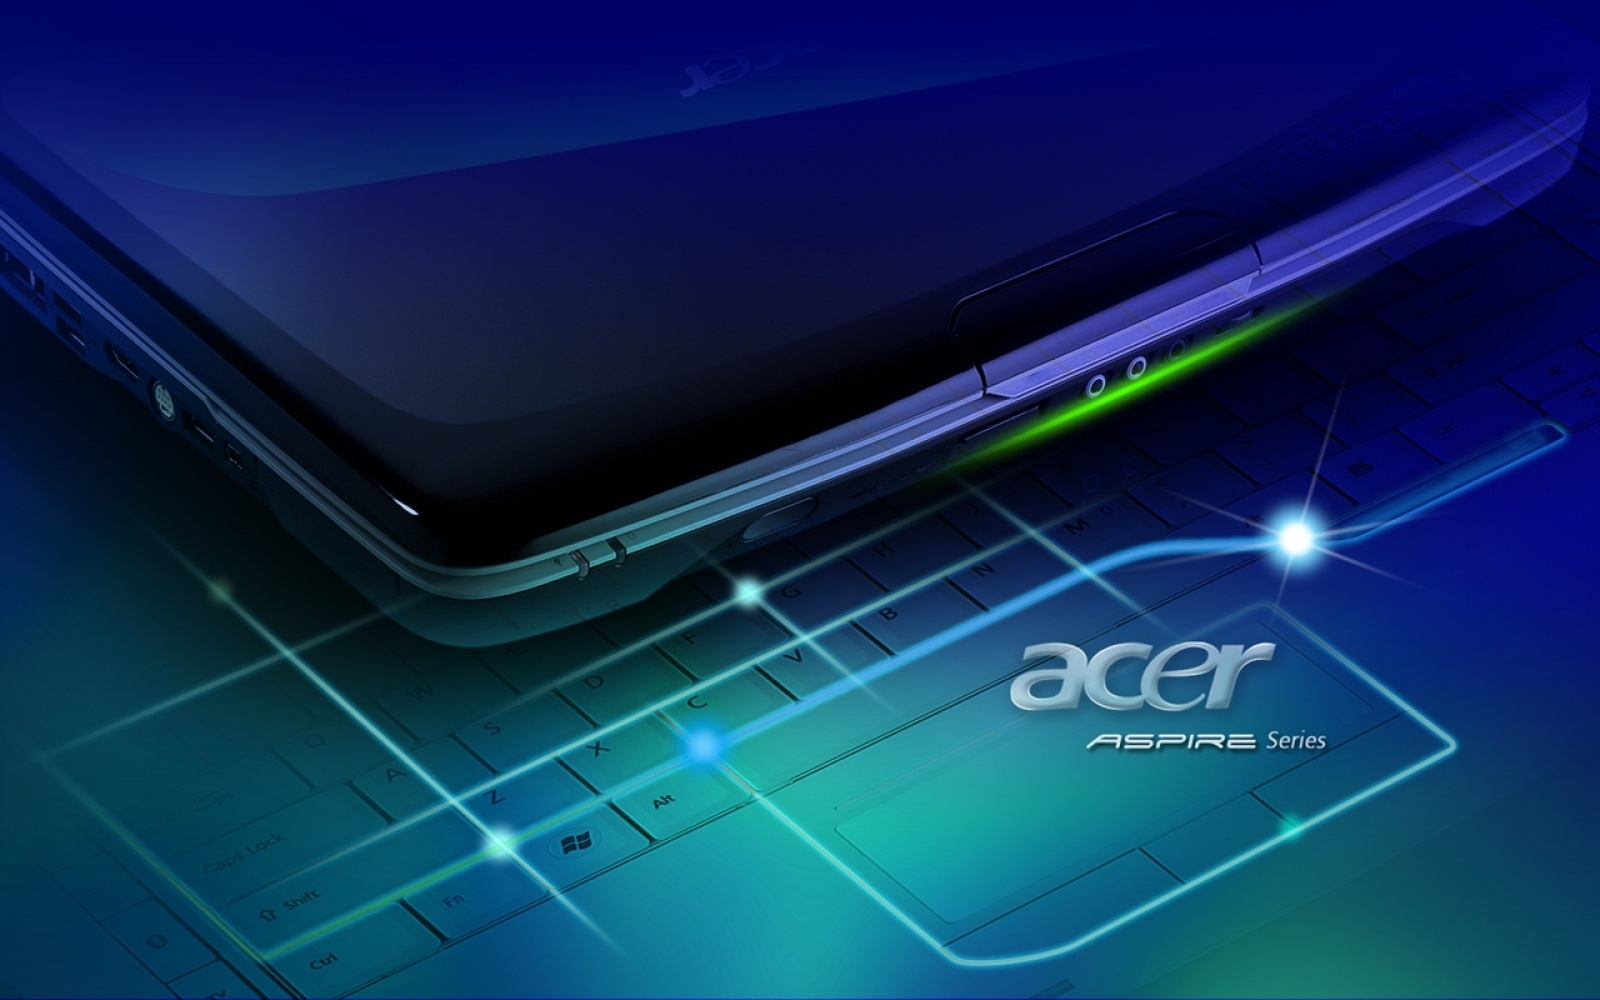 d acer wallpaper for pc | hd wallpapers | pinterest | acer and wallpaper